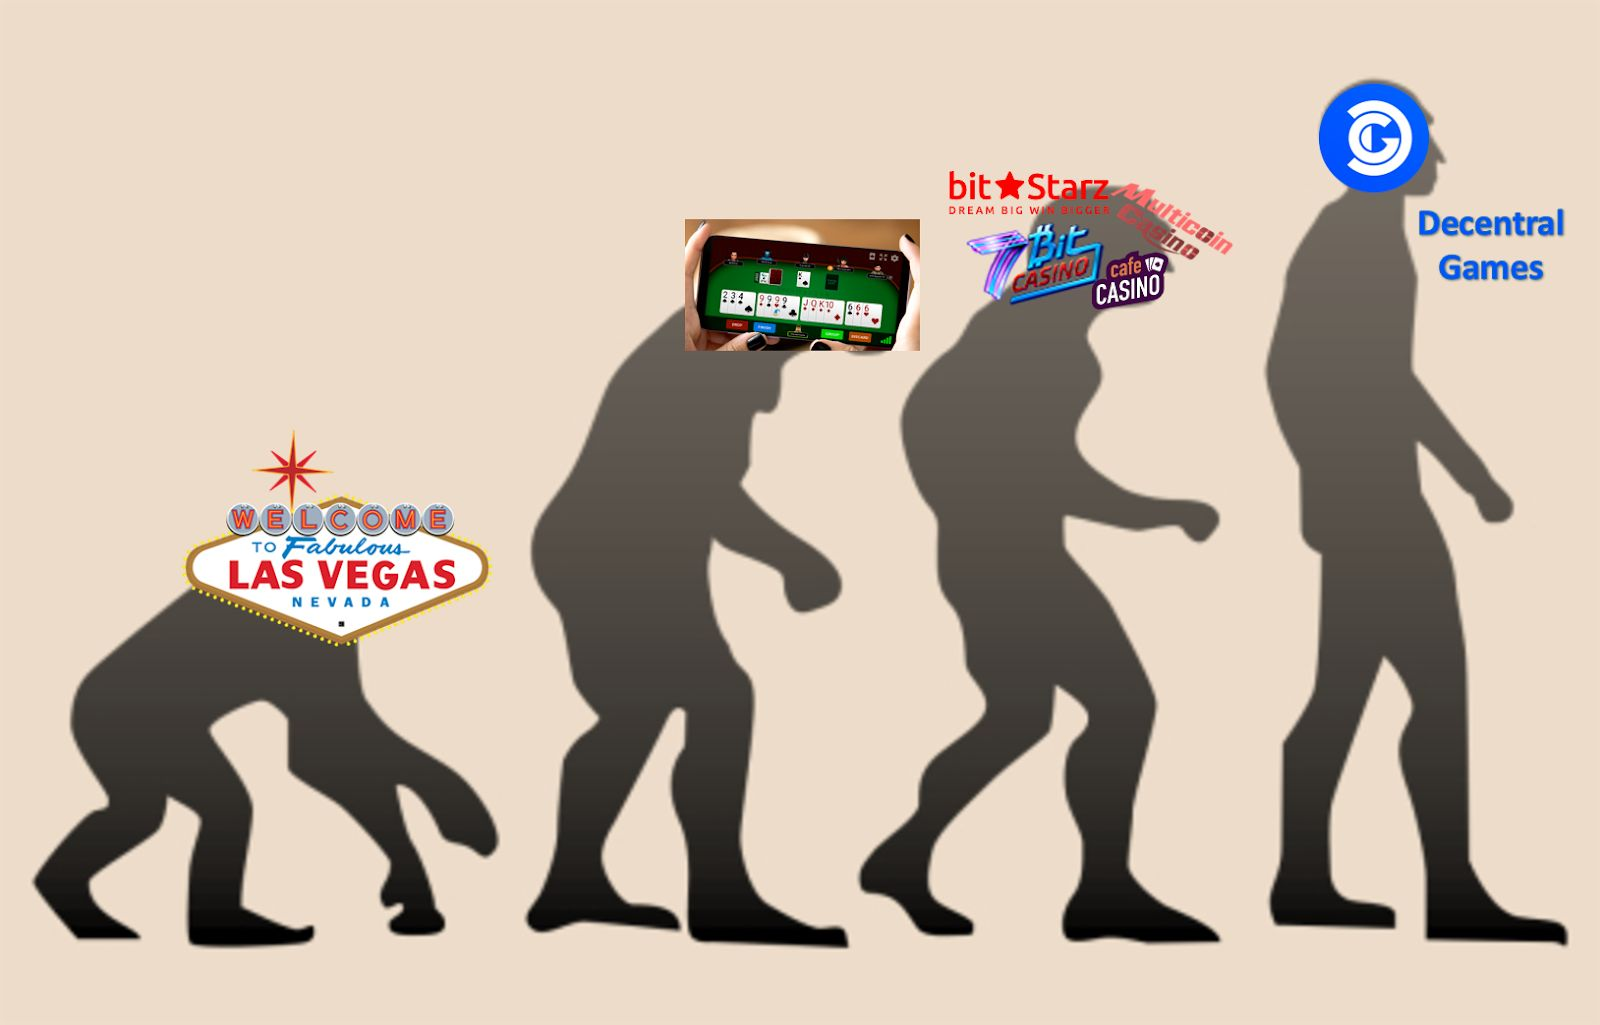 /the-evolution-of-casinos-in-the-age-of-decentralized-internet-20t35f5 feature image